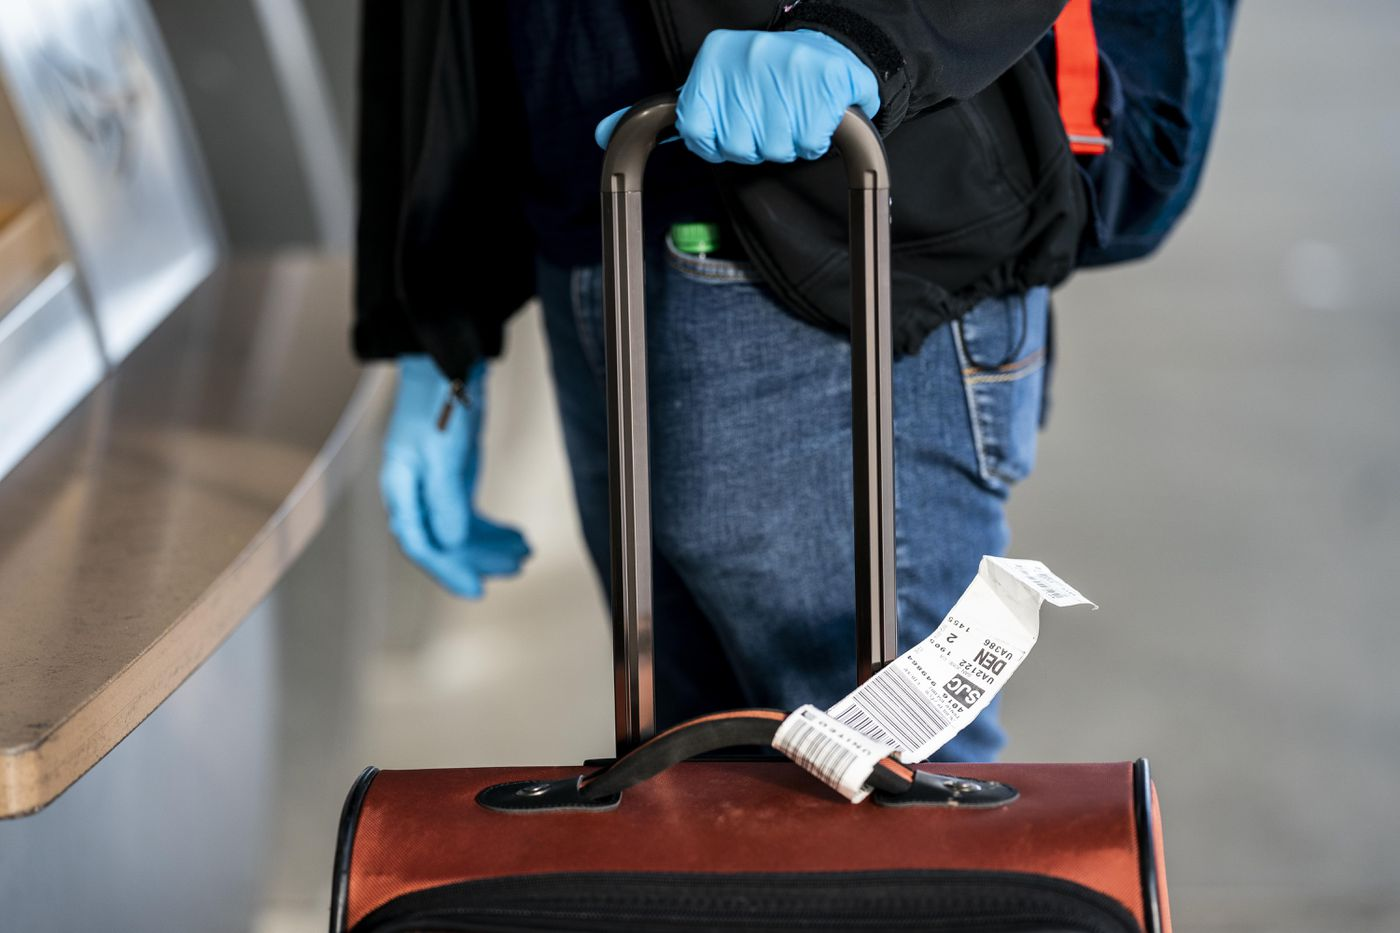 A traveler arrives with protective gloves to a quiet Norman Y. Mineta San Jose International Airport on March 20. Washington Post photo by Melina Mara